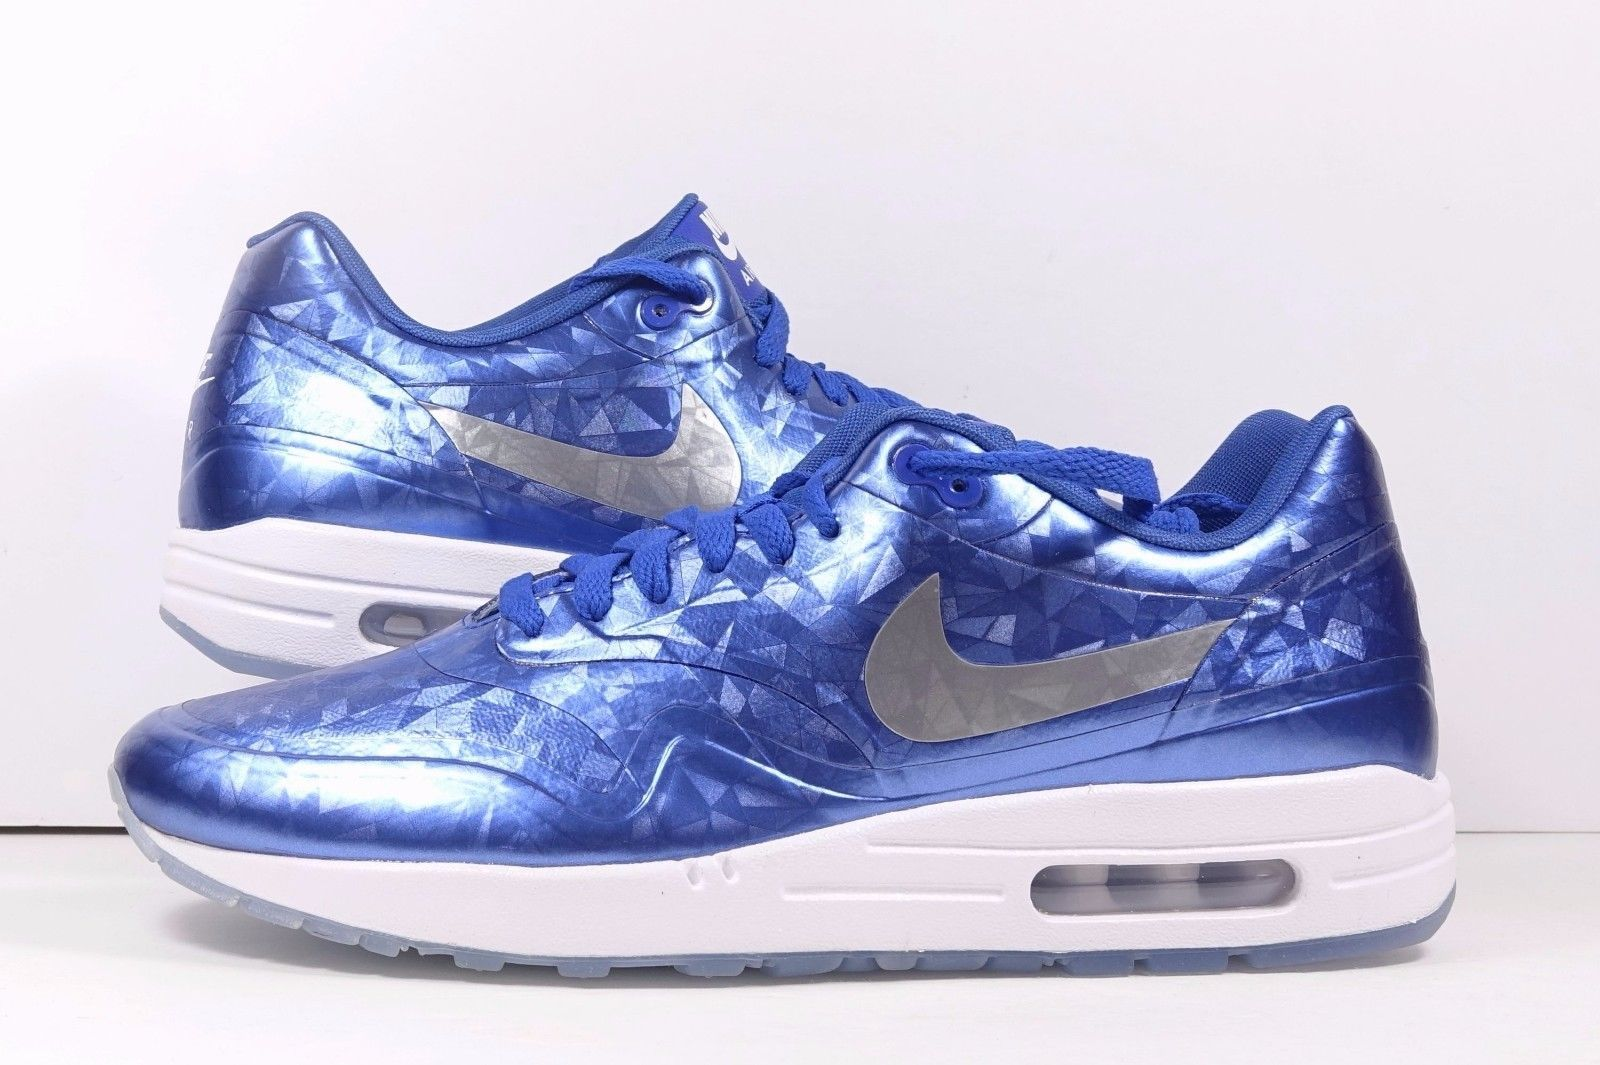 buy online 635ce 930e6 Nike Air Max 1 ID Blue White Ice Sole Sz and 50 similar items. S l1600